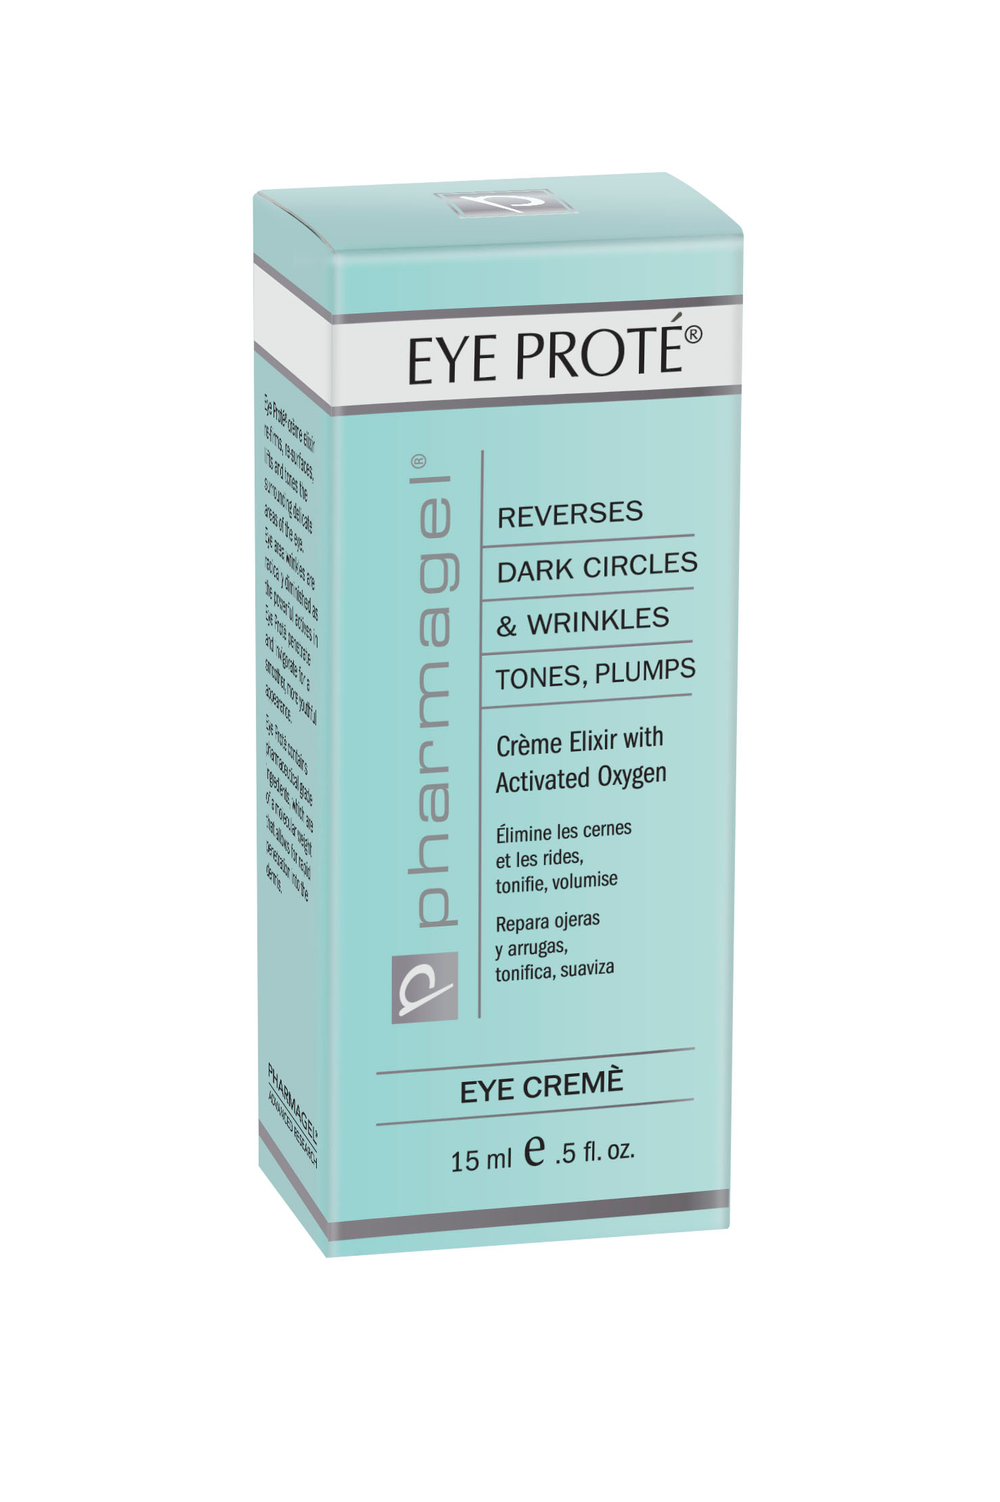 EYE PROTÉ  Reverses eye area wrinkles, puffiness and dark circles, as well as lost tone and elasticity. The special formulation contains Perfluorodecalin, a highly activated oxygen booster that has been medically tested for its effectiveness. Perfluorodecalin breathes life into cells surrounding the delicate eye contours. EYE PROTÉ contains pharmaceutical grade ingredients of a specific molecular weight that allow for rapid penetration of the product into the dermis. This rapid penetration gives lasting results when used daily. EYE PROTÉ is fragrance-free and is noncomedogenic (will not clog pores).